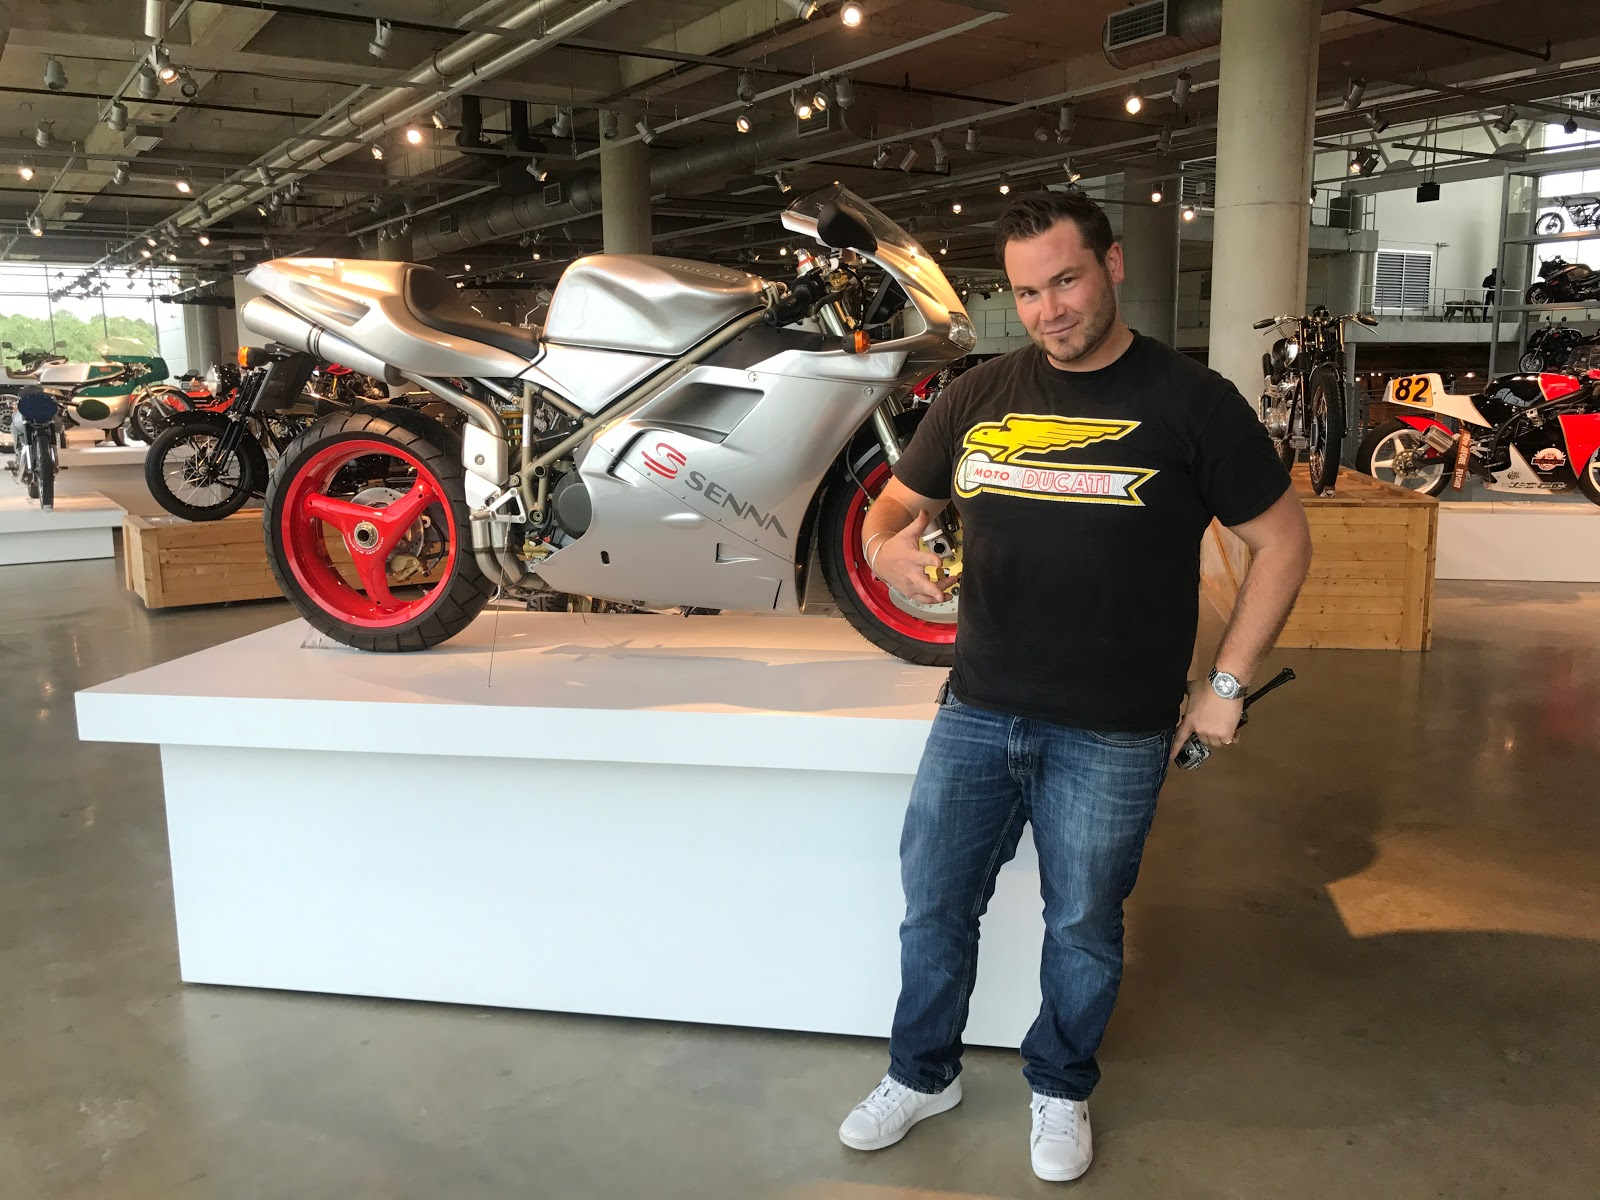 Tigh Loughhead on a 1997 Ducati 916 Senna Edition Superbike Motorcycle